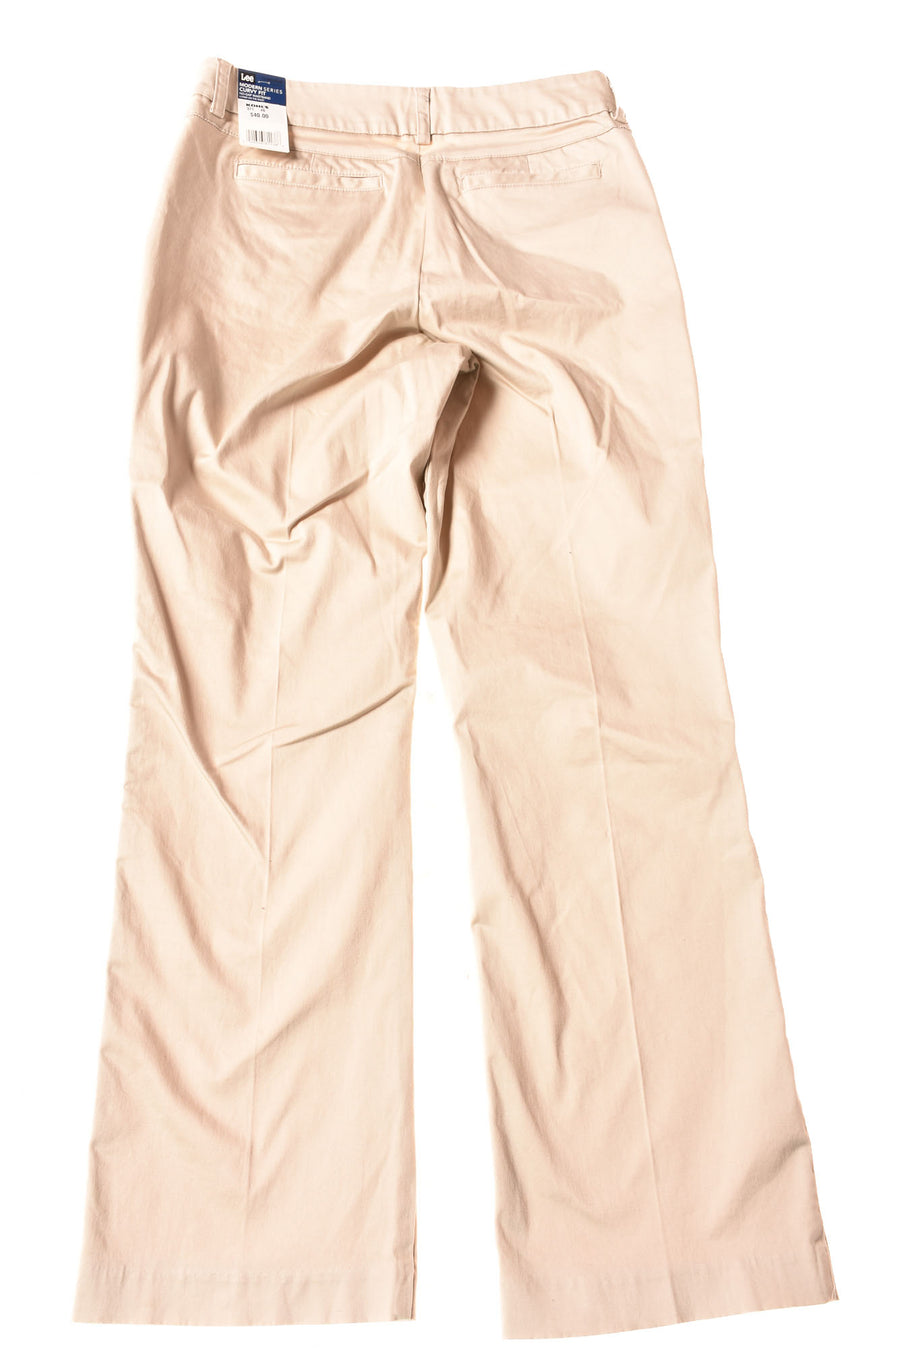 NEW Lee Women's Slacks 14 Tan